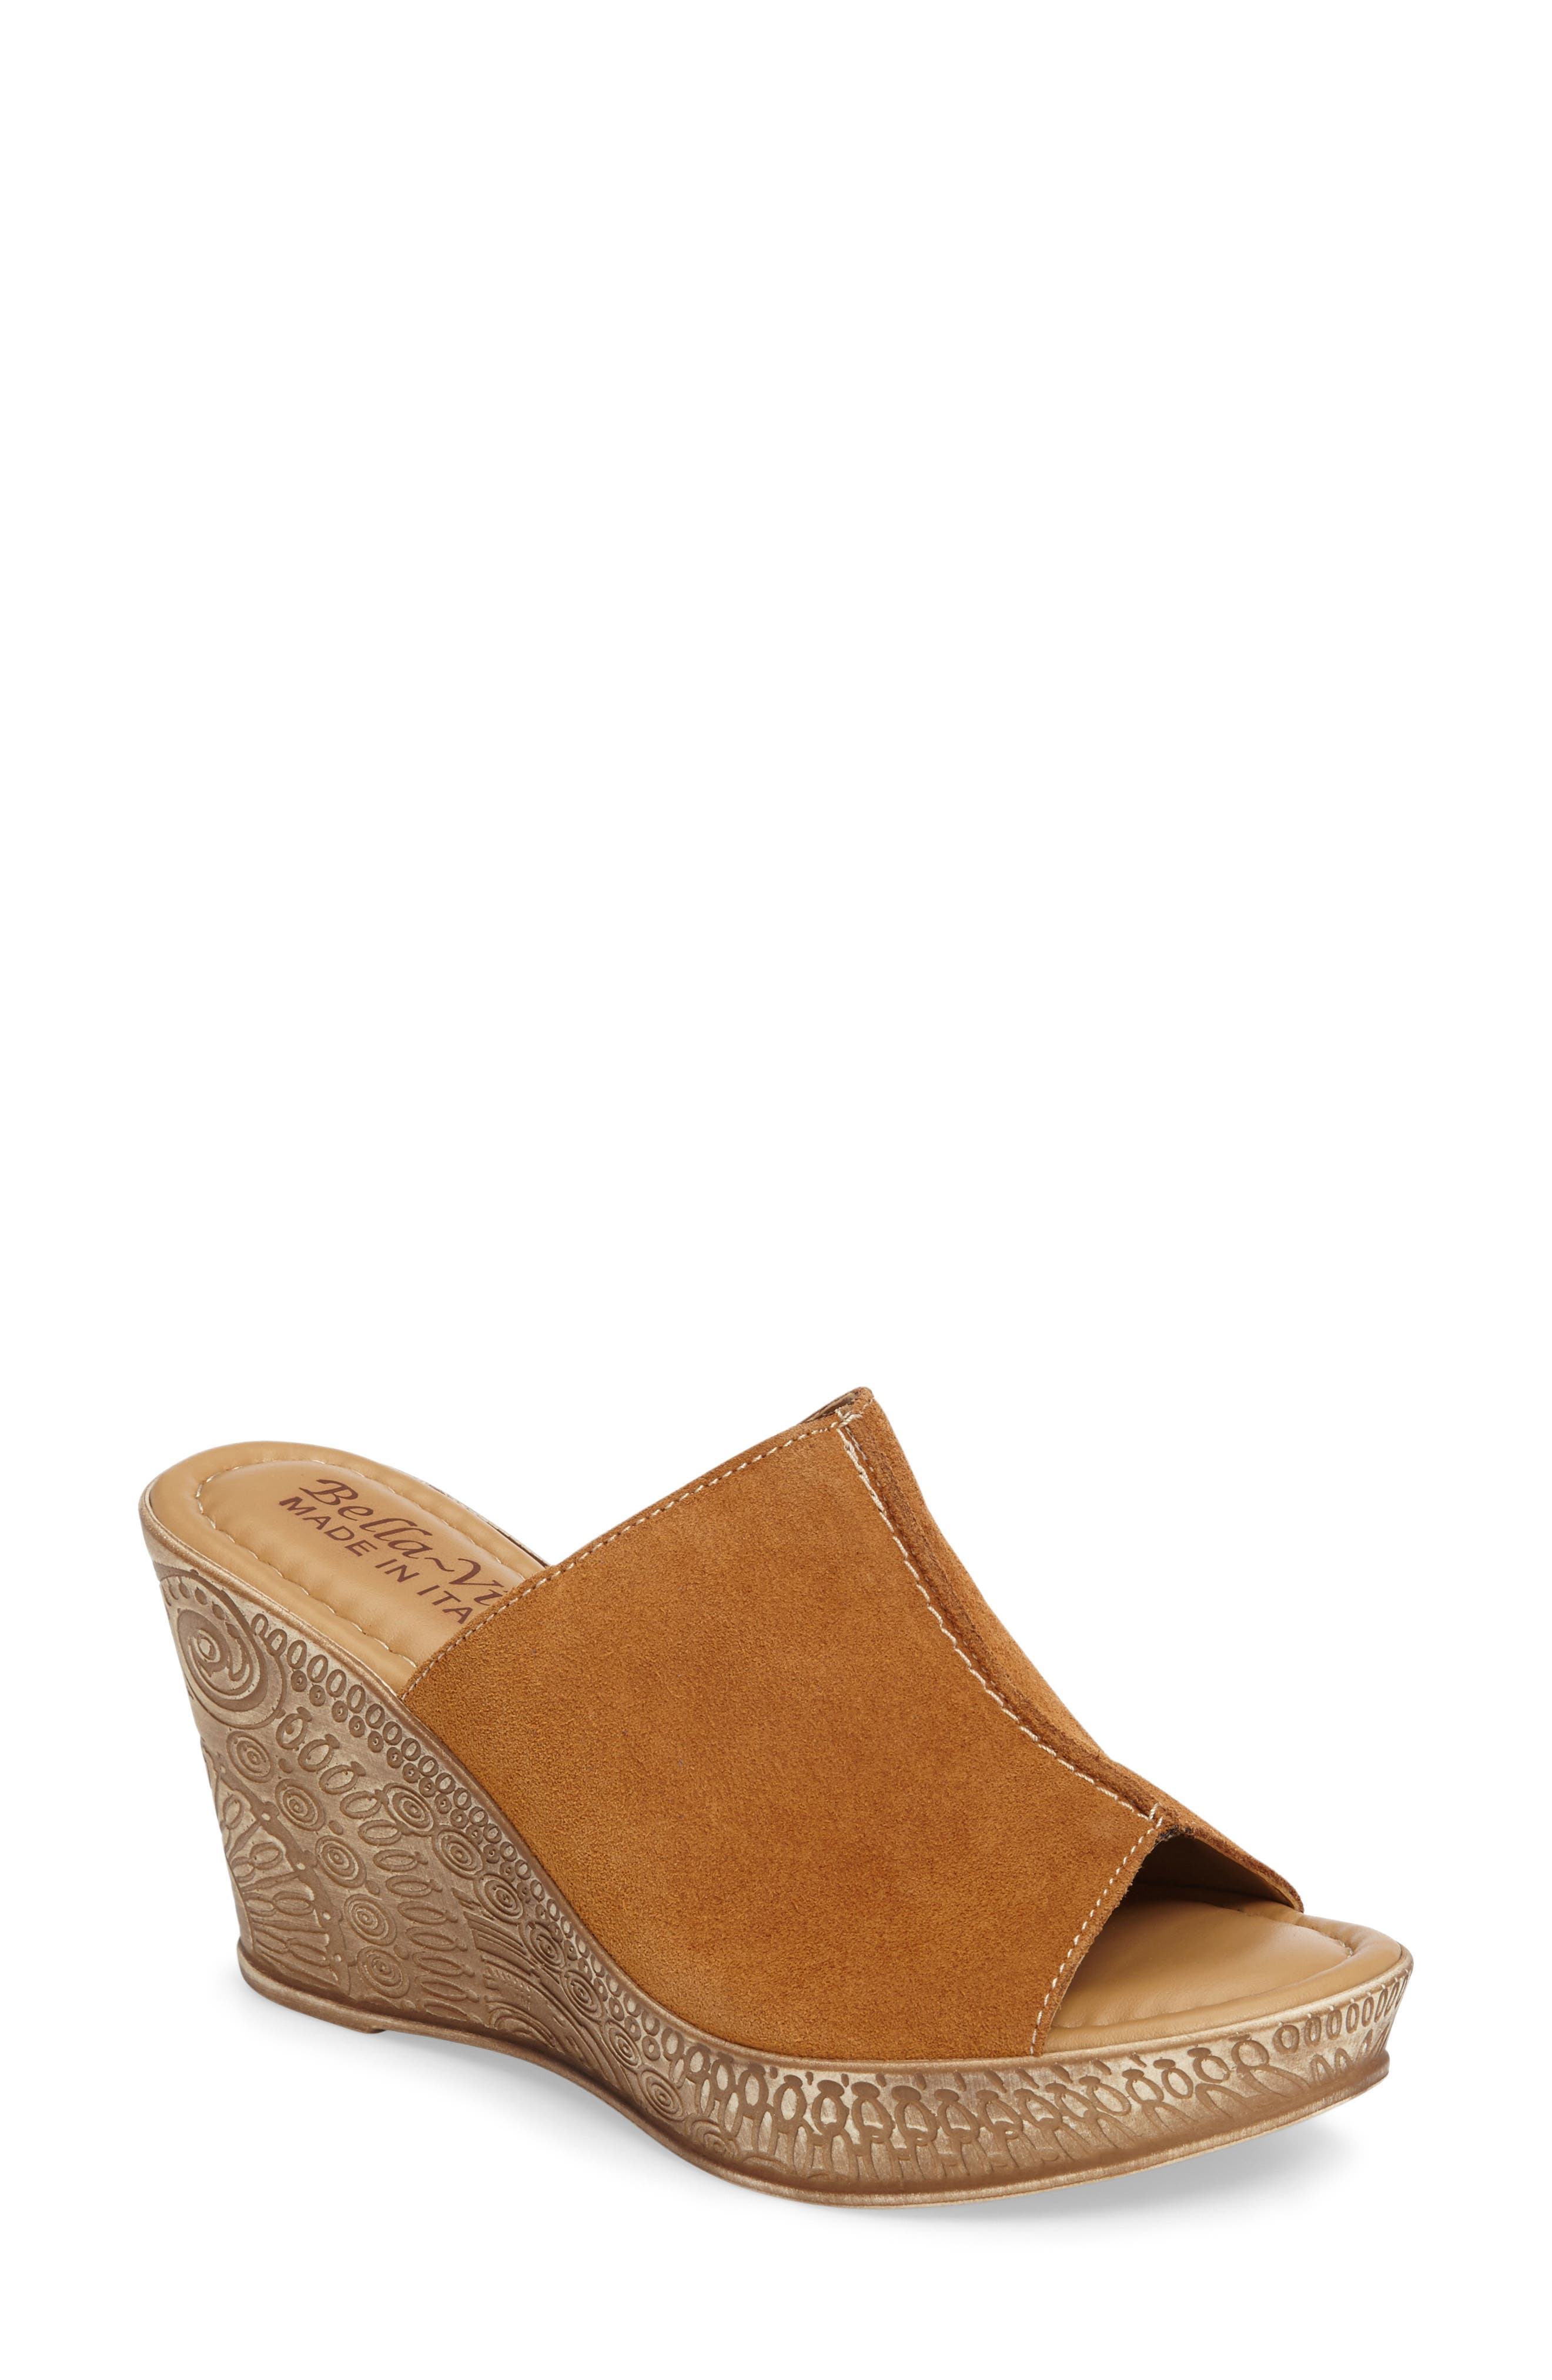 BELLA VITA Wedge Slide Sandal